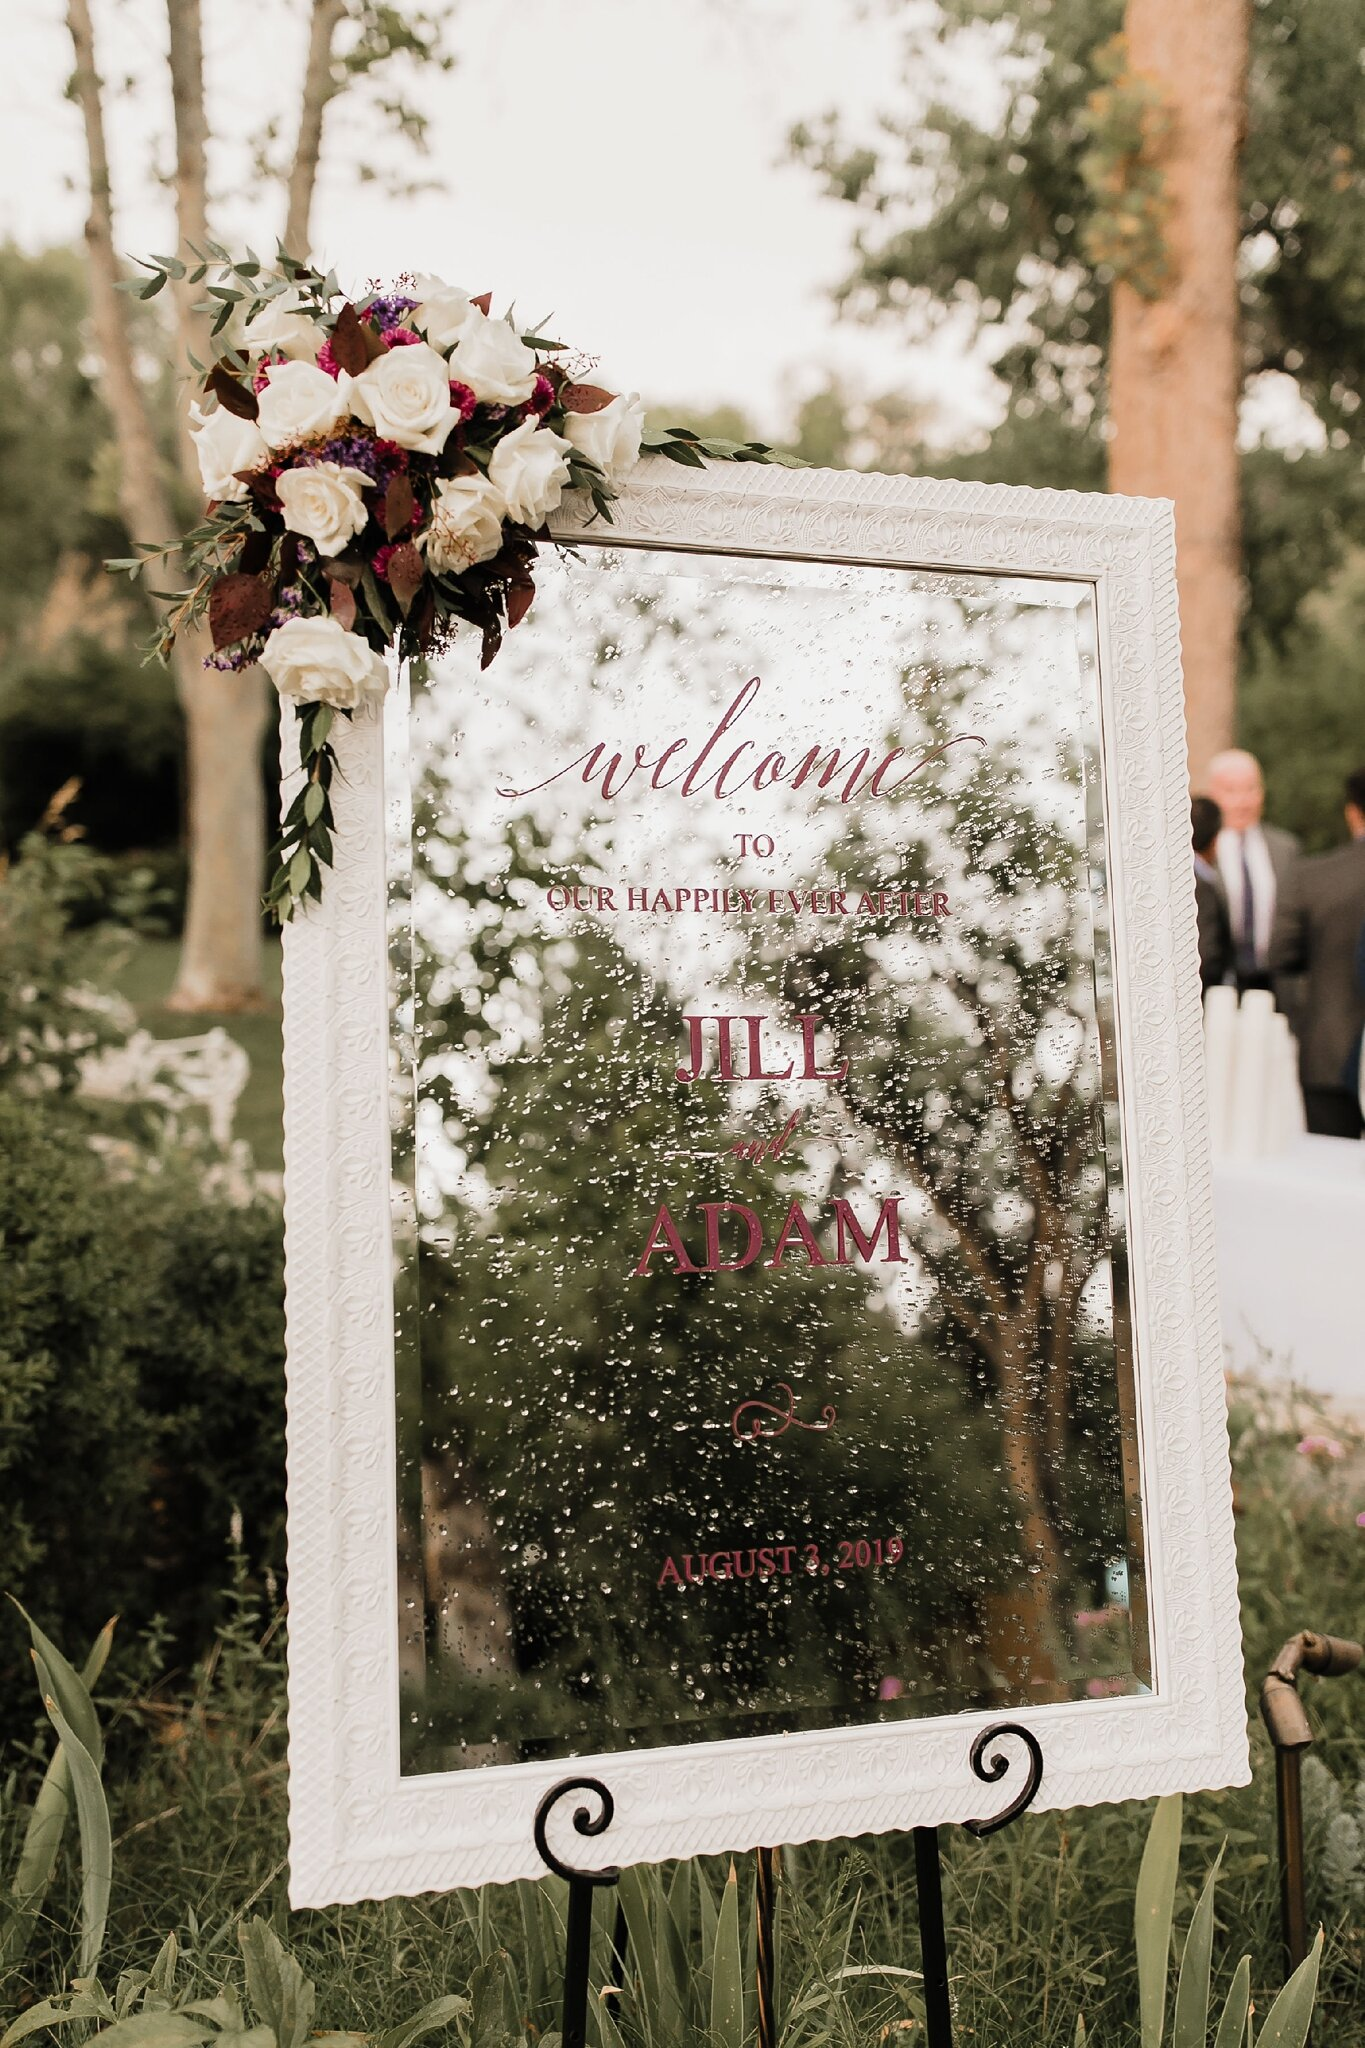 Alicia+lucia+photography+-+albuquerque+wedding+photographer+-+santa+fe+wedding+photography+-+new+mexico+wedding+photographer+-+new+mexico+wedding+-+wedding+signage+-+wedding+signs+-+glass+wedding+signs_0008.jpg